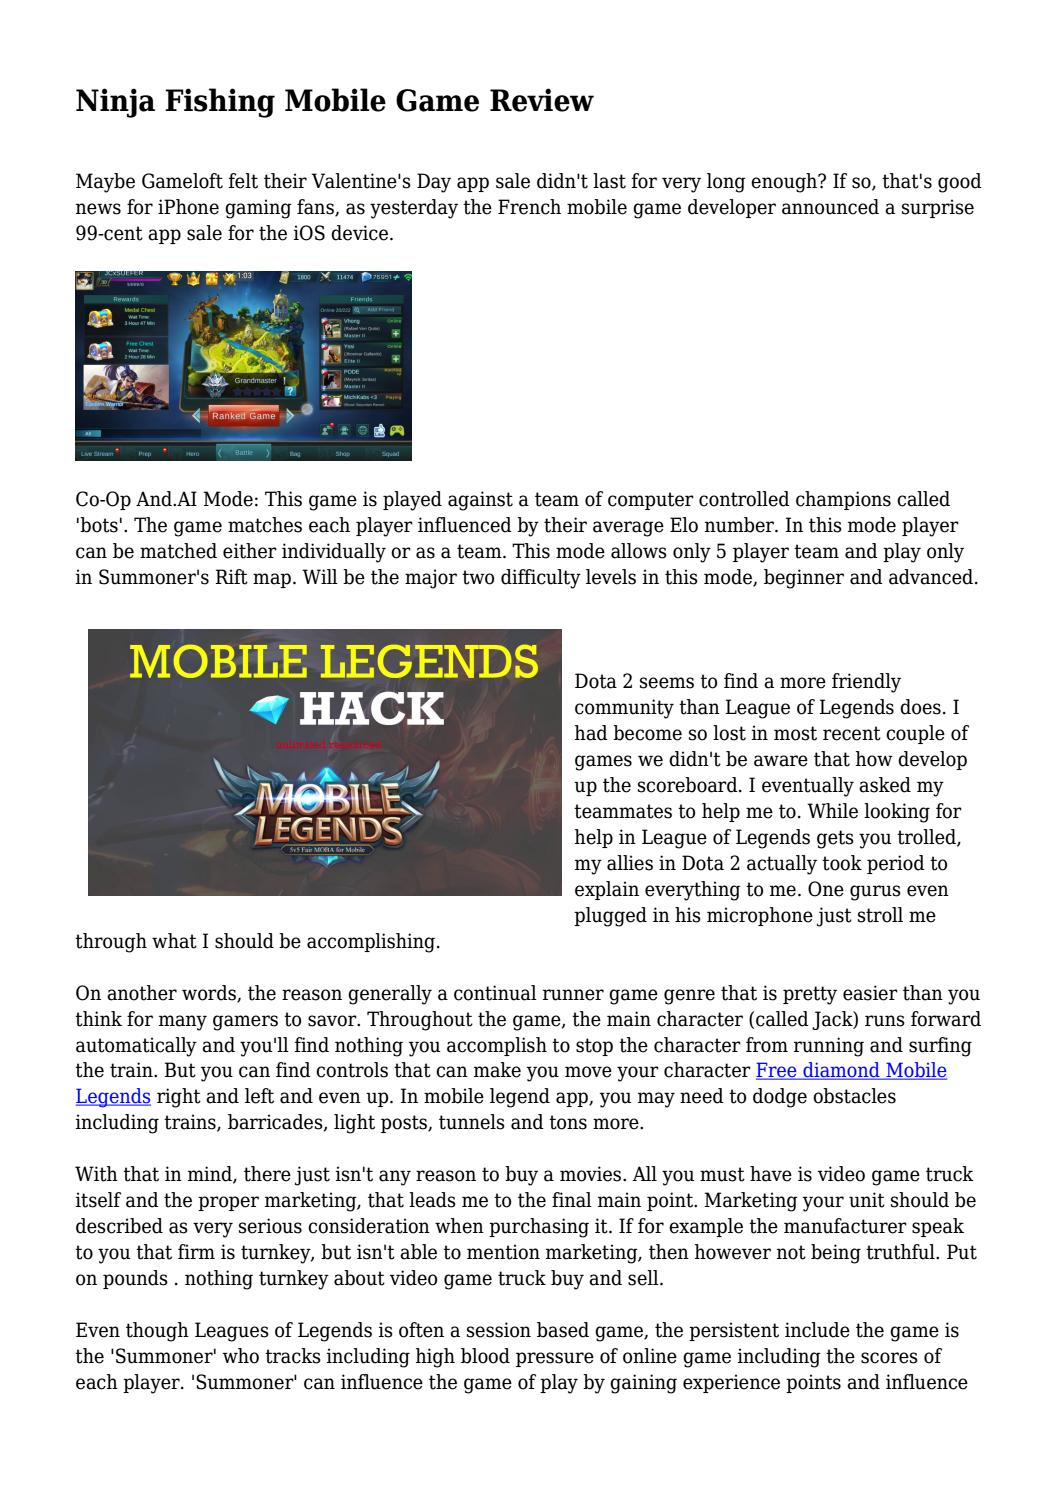 Ninja Fishing Mobile Game Review by brandbusinessout - issuu